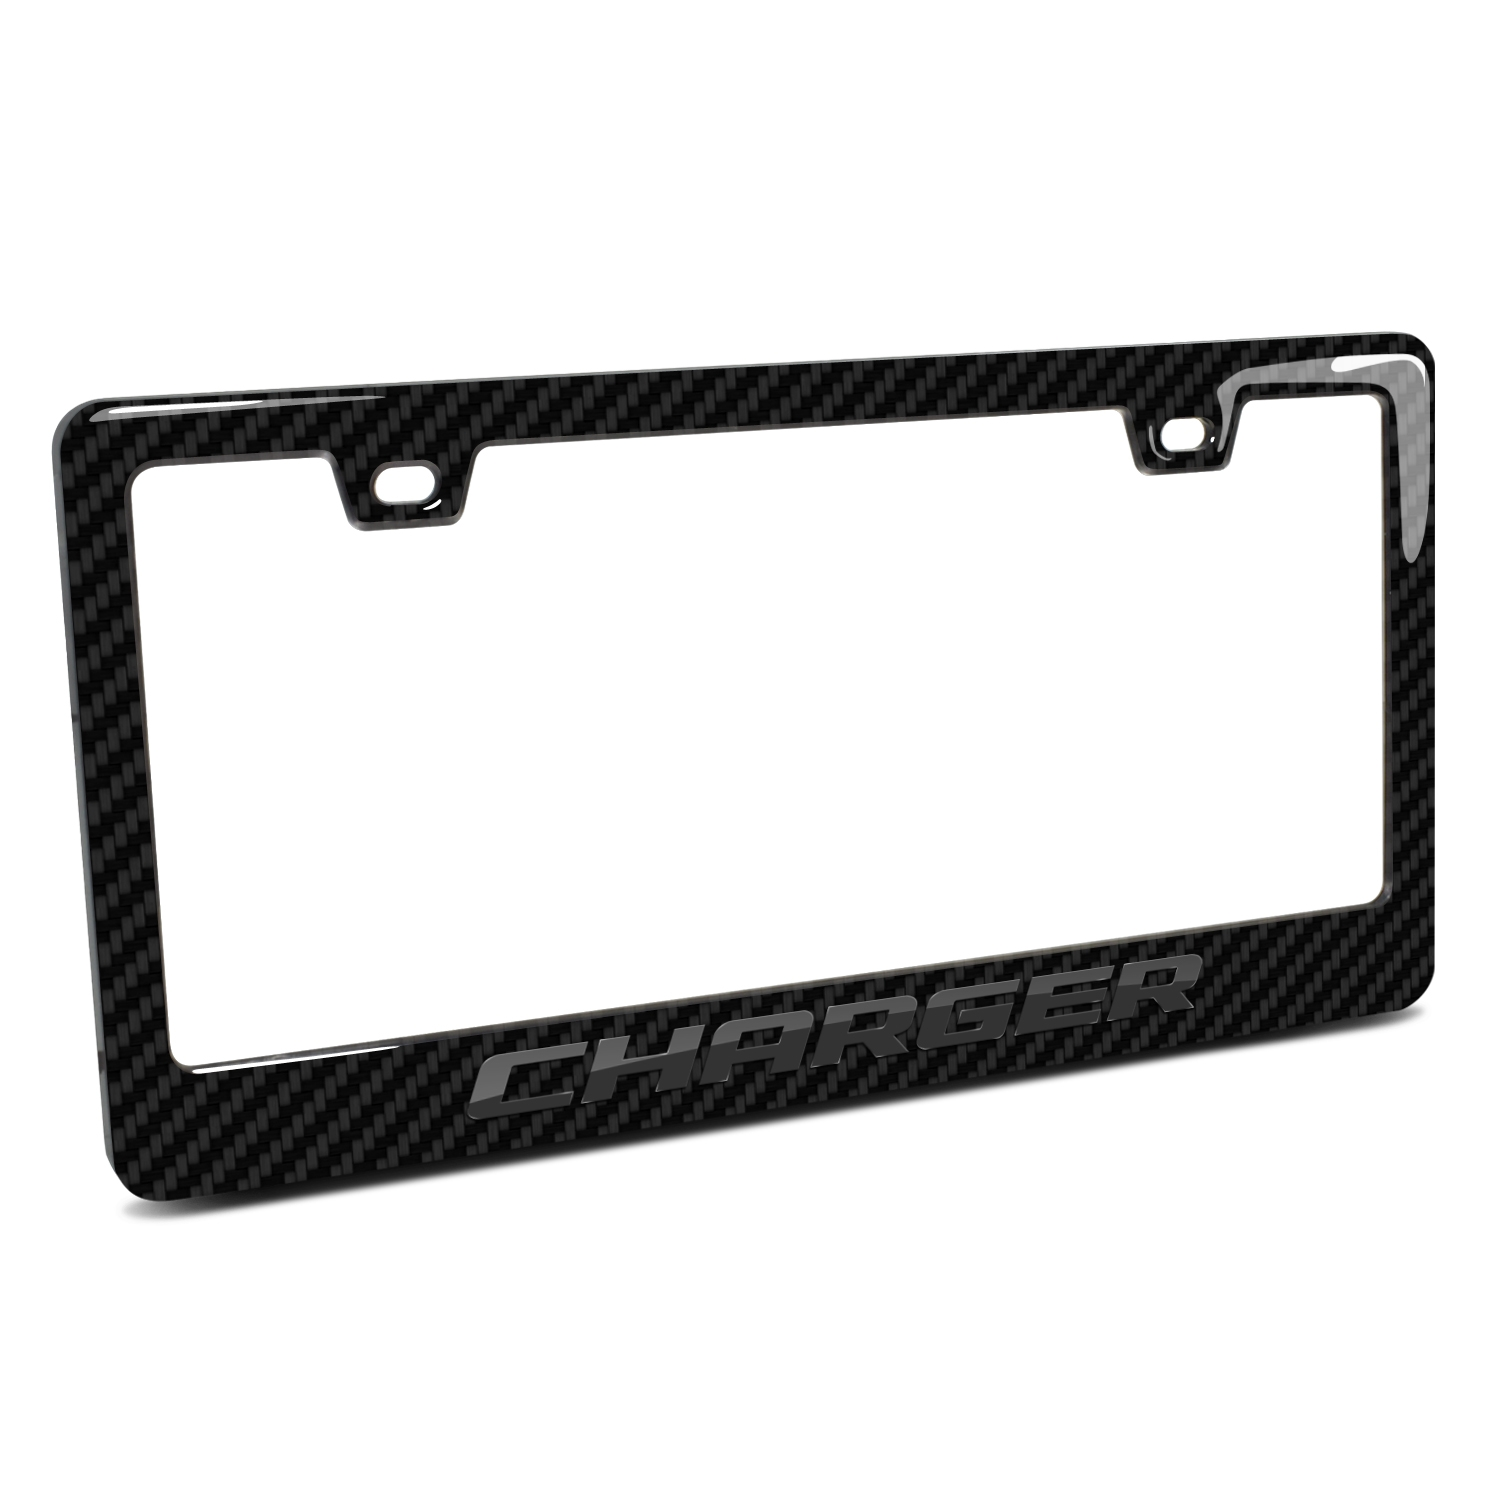 Dodge Charger in 3D Black on Black Real 3K Carbon Fiber Finish ABS Plastic License Plate Frame